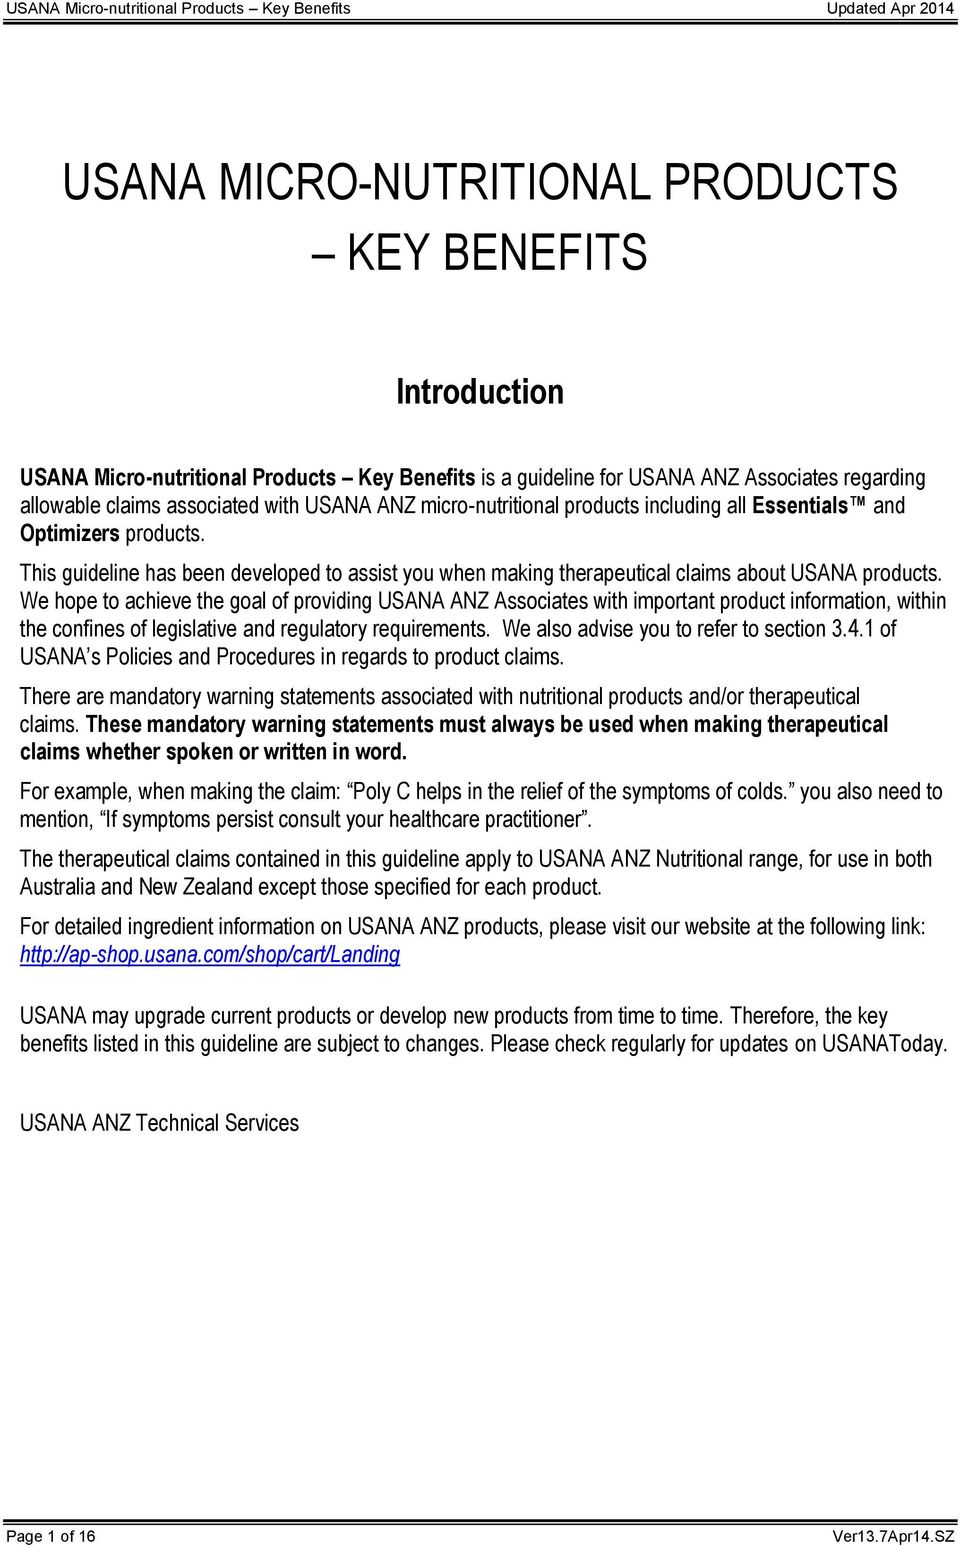 This guideline has been developed to assist you when making therapeutical claims about USANA products.